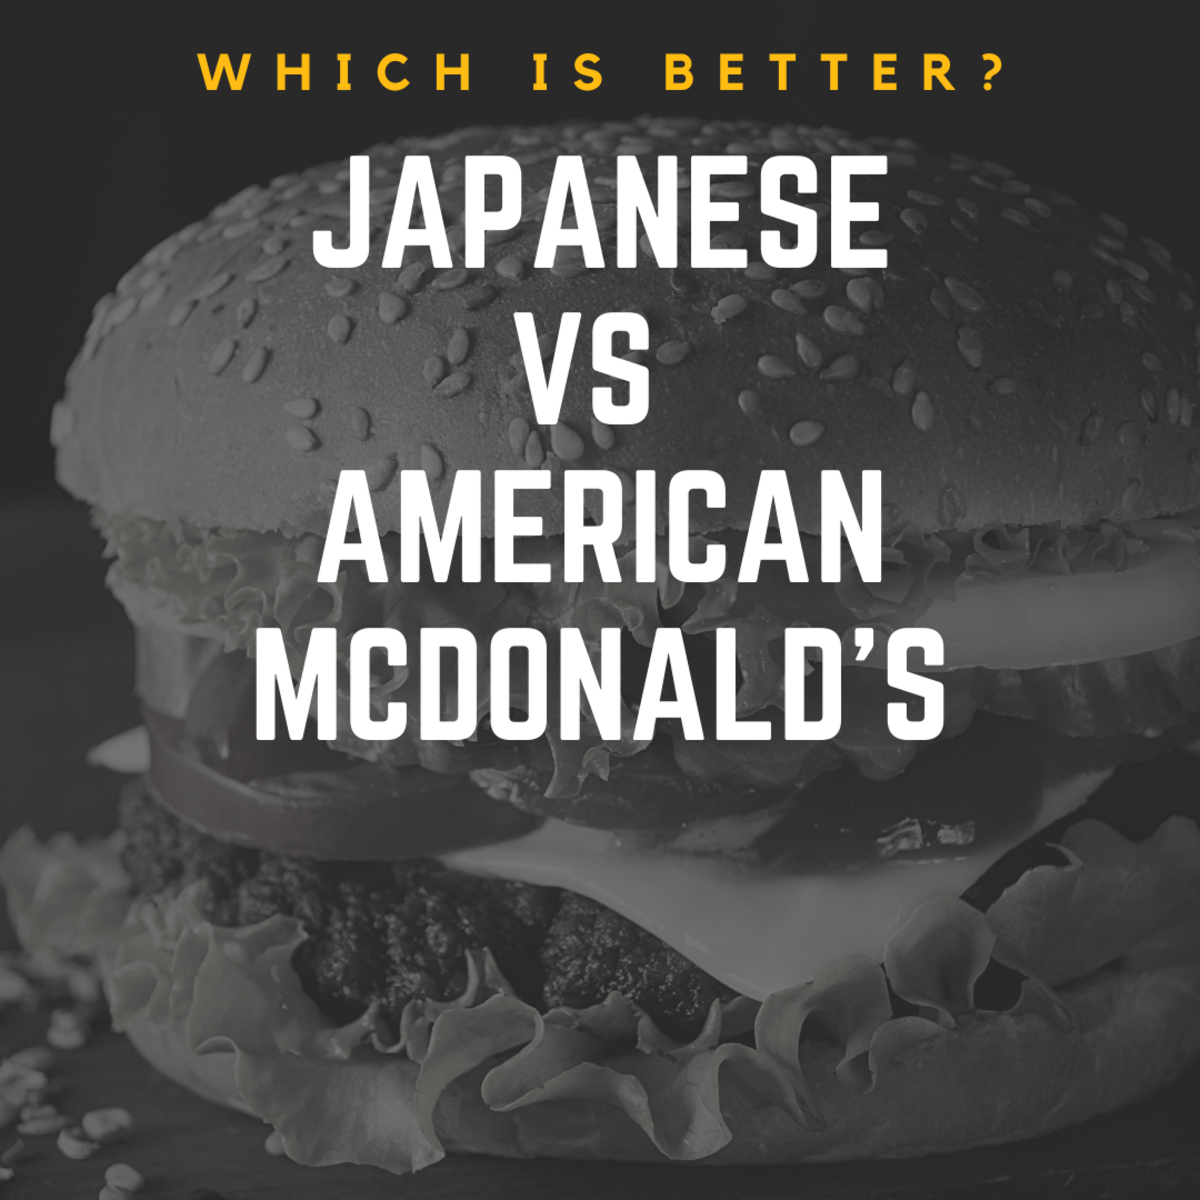 Which patty reigns supreme? Find out!